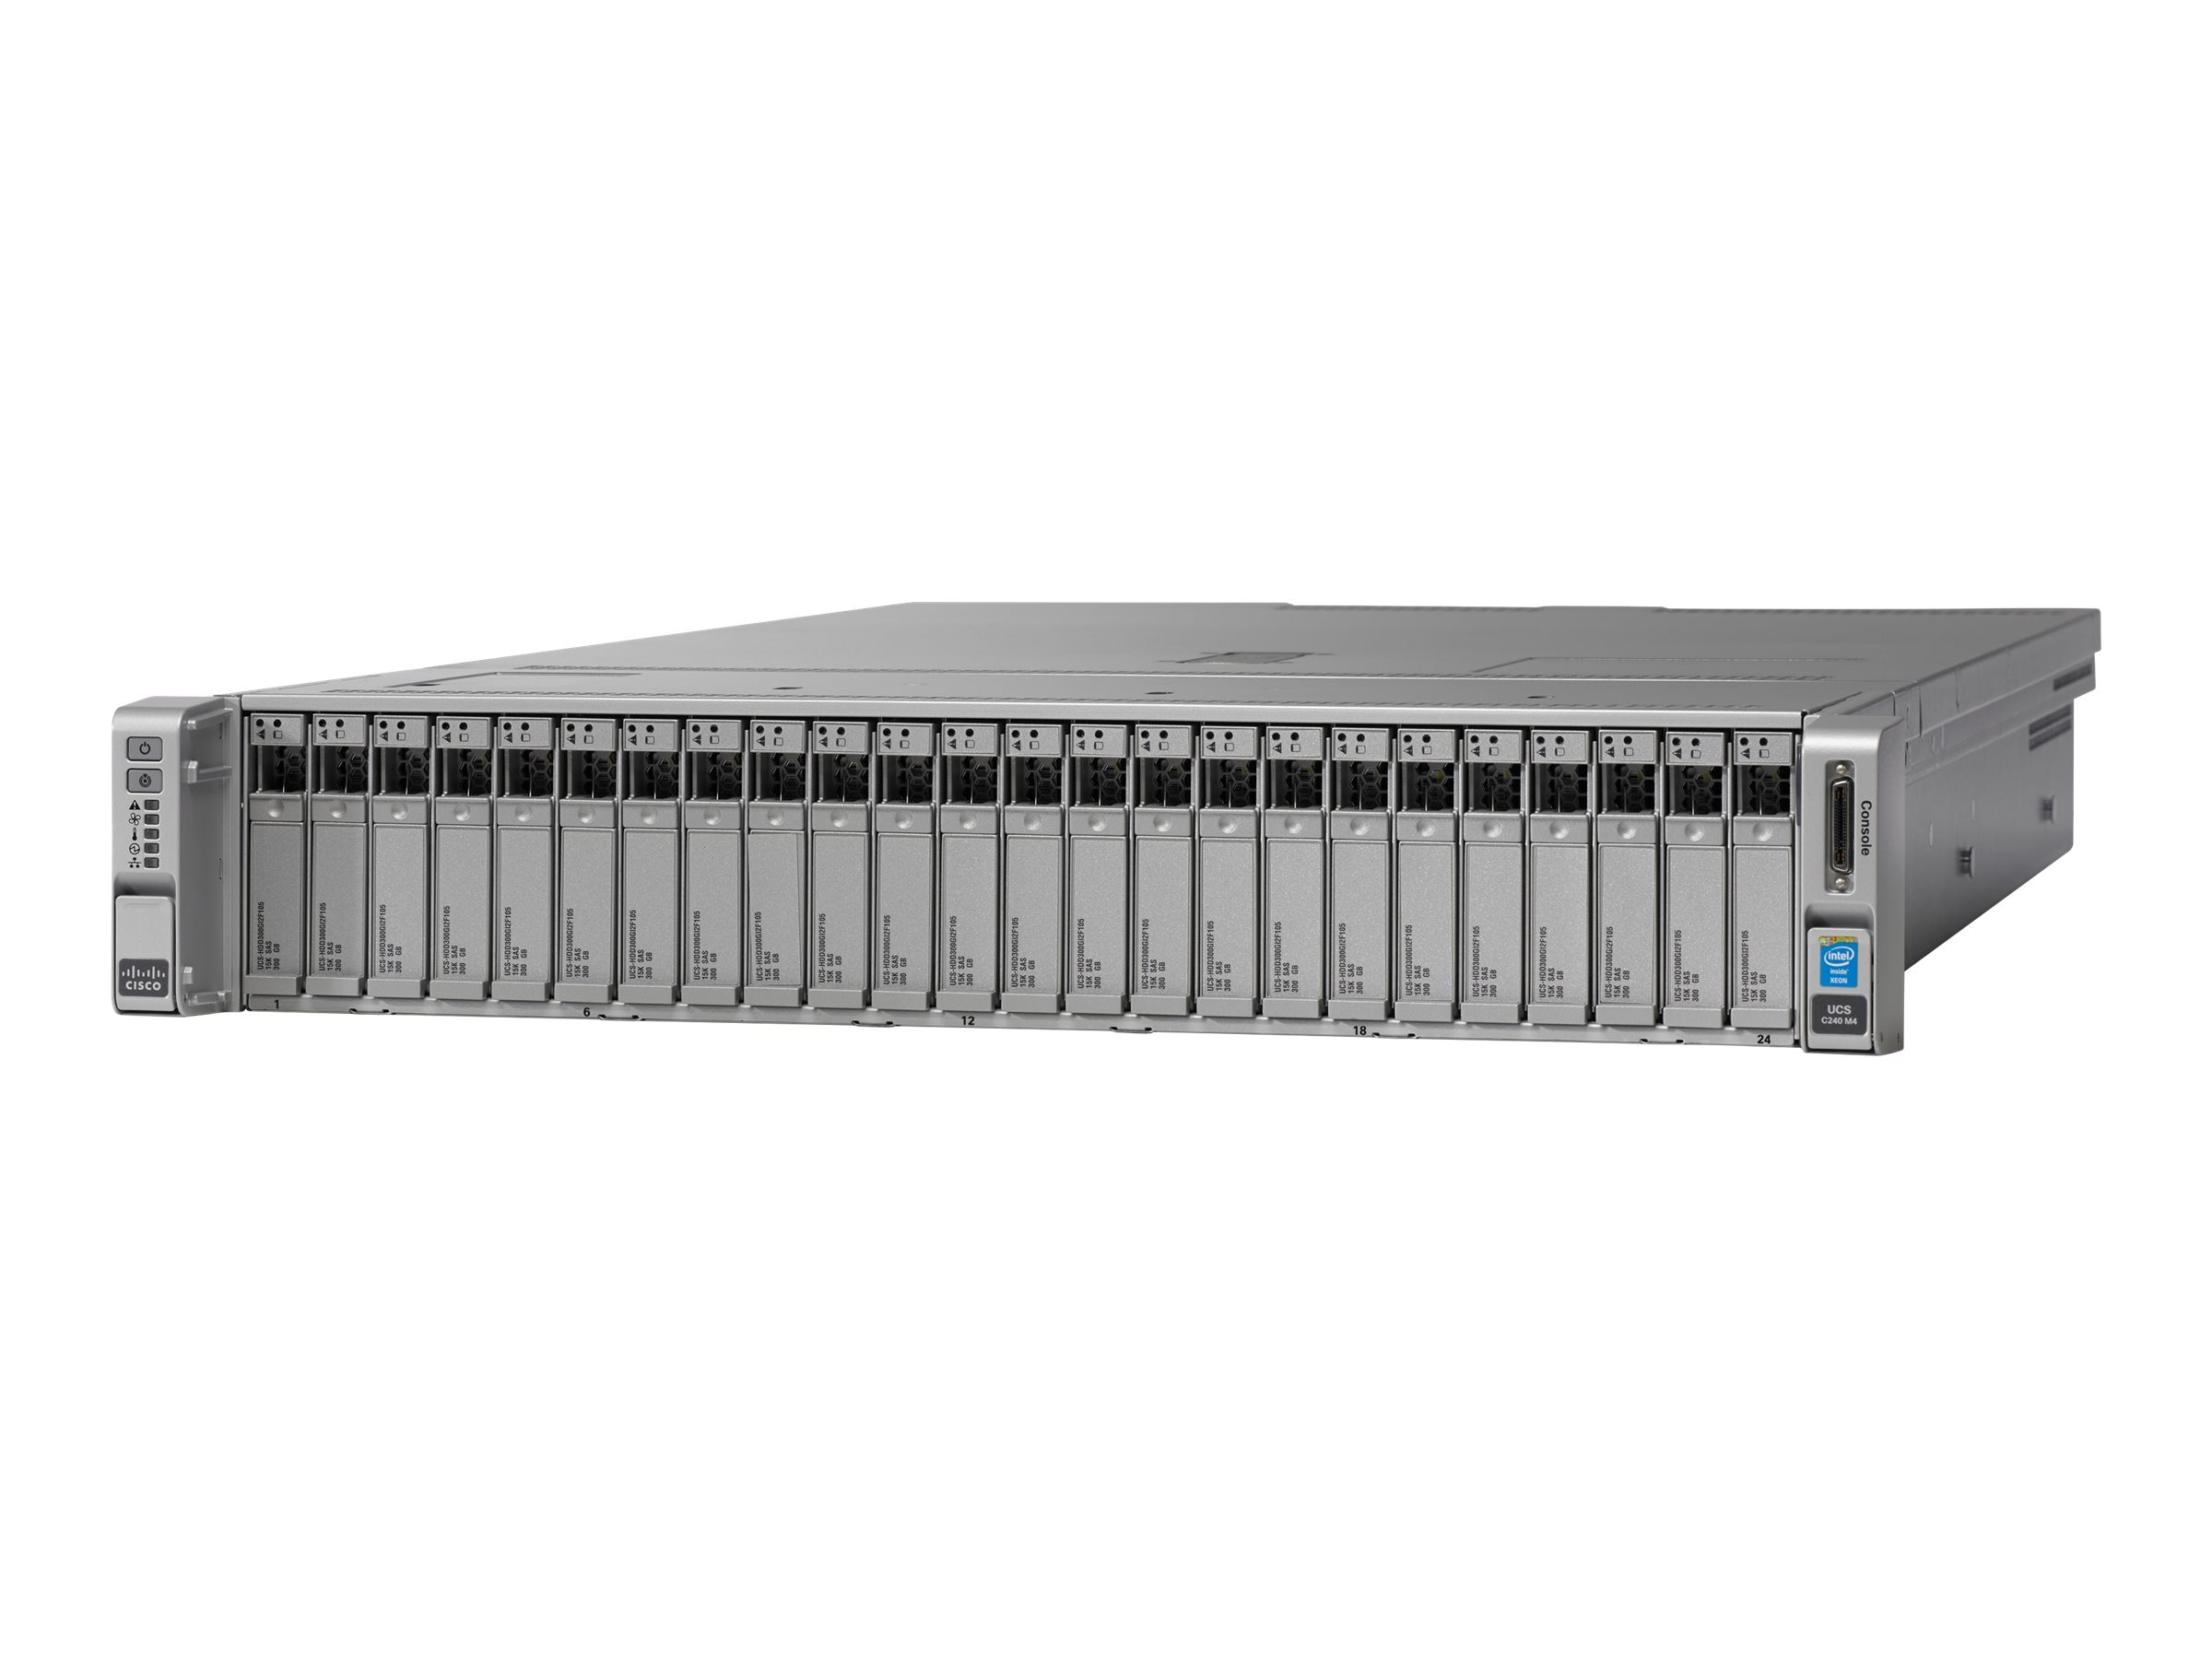 Cisco UCS C240 M4S Xeon E5-2650 v4 32GB MRAID 32GB SD 1x1200W Rails, UCS-SPR-C240M4-BA1